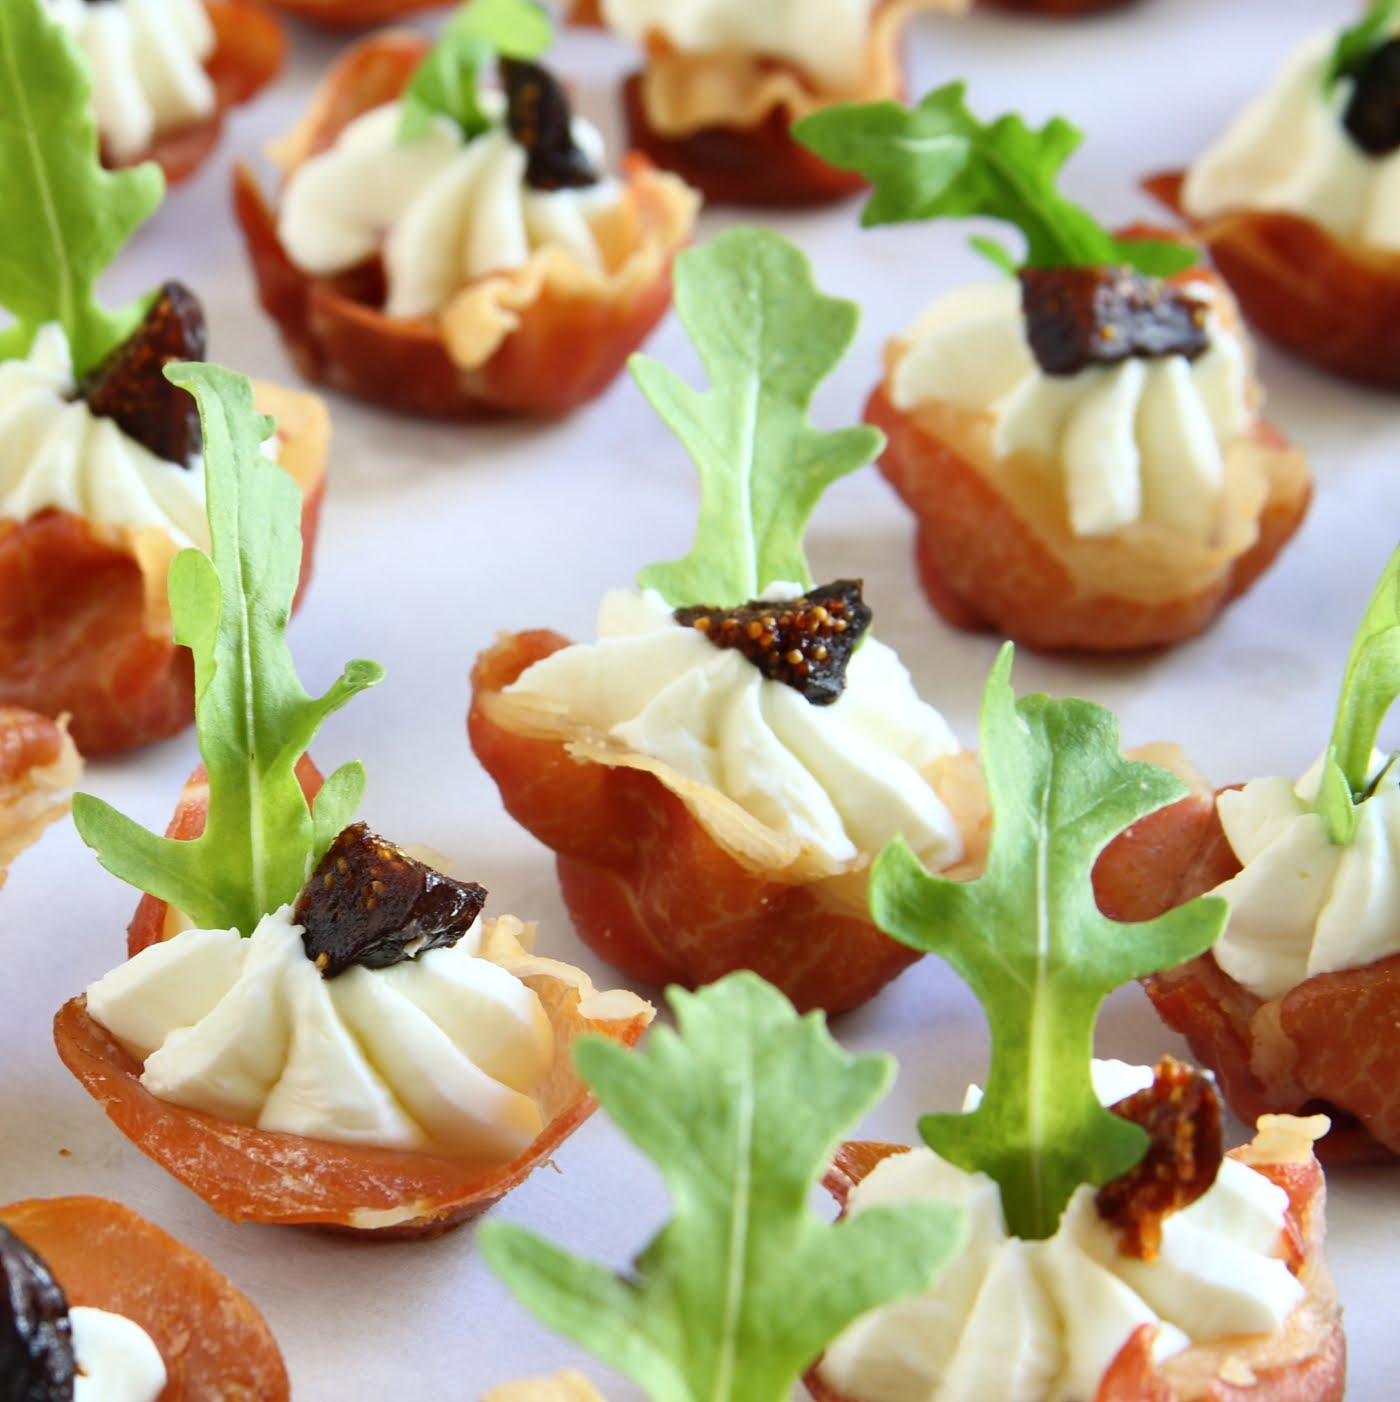 ShowFood Chef: Appetizer Prosciutto Cups With Goat Cheese